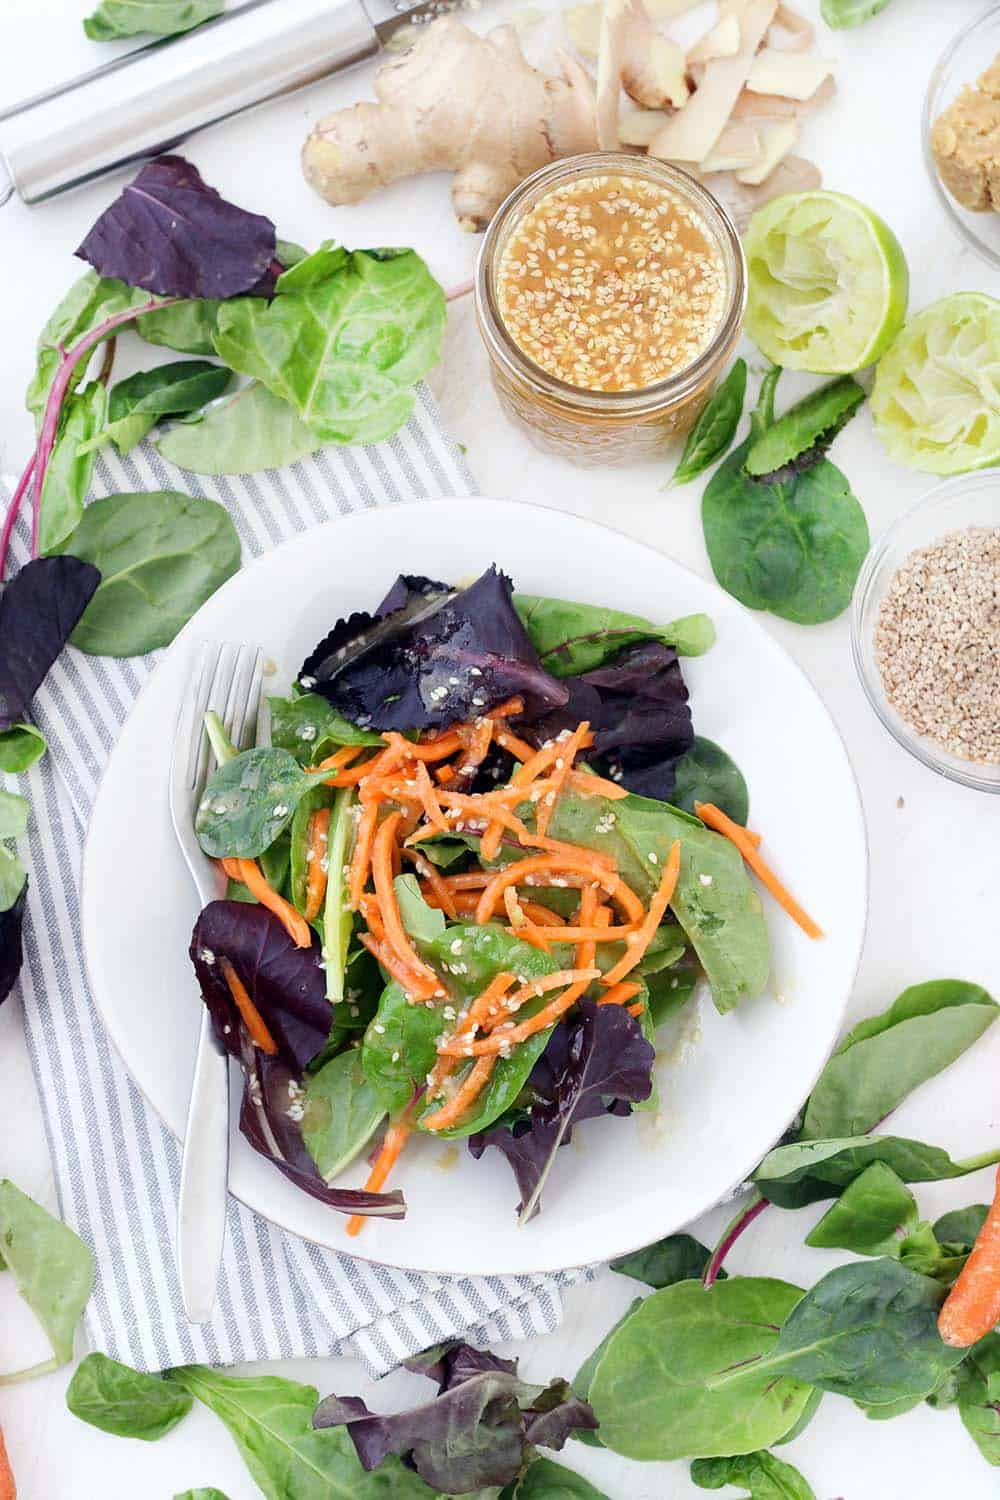 This Miso Sesame Ginger Dressing packs a ton of flavor and nutritional punch- the sesame and fresh ginger pair together so well, it's made tangy by the lime juice and vinegar, and emulsified by the miso, which adds a salty umami to the dressing.